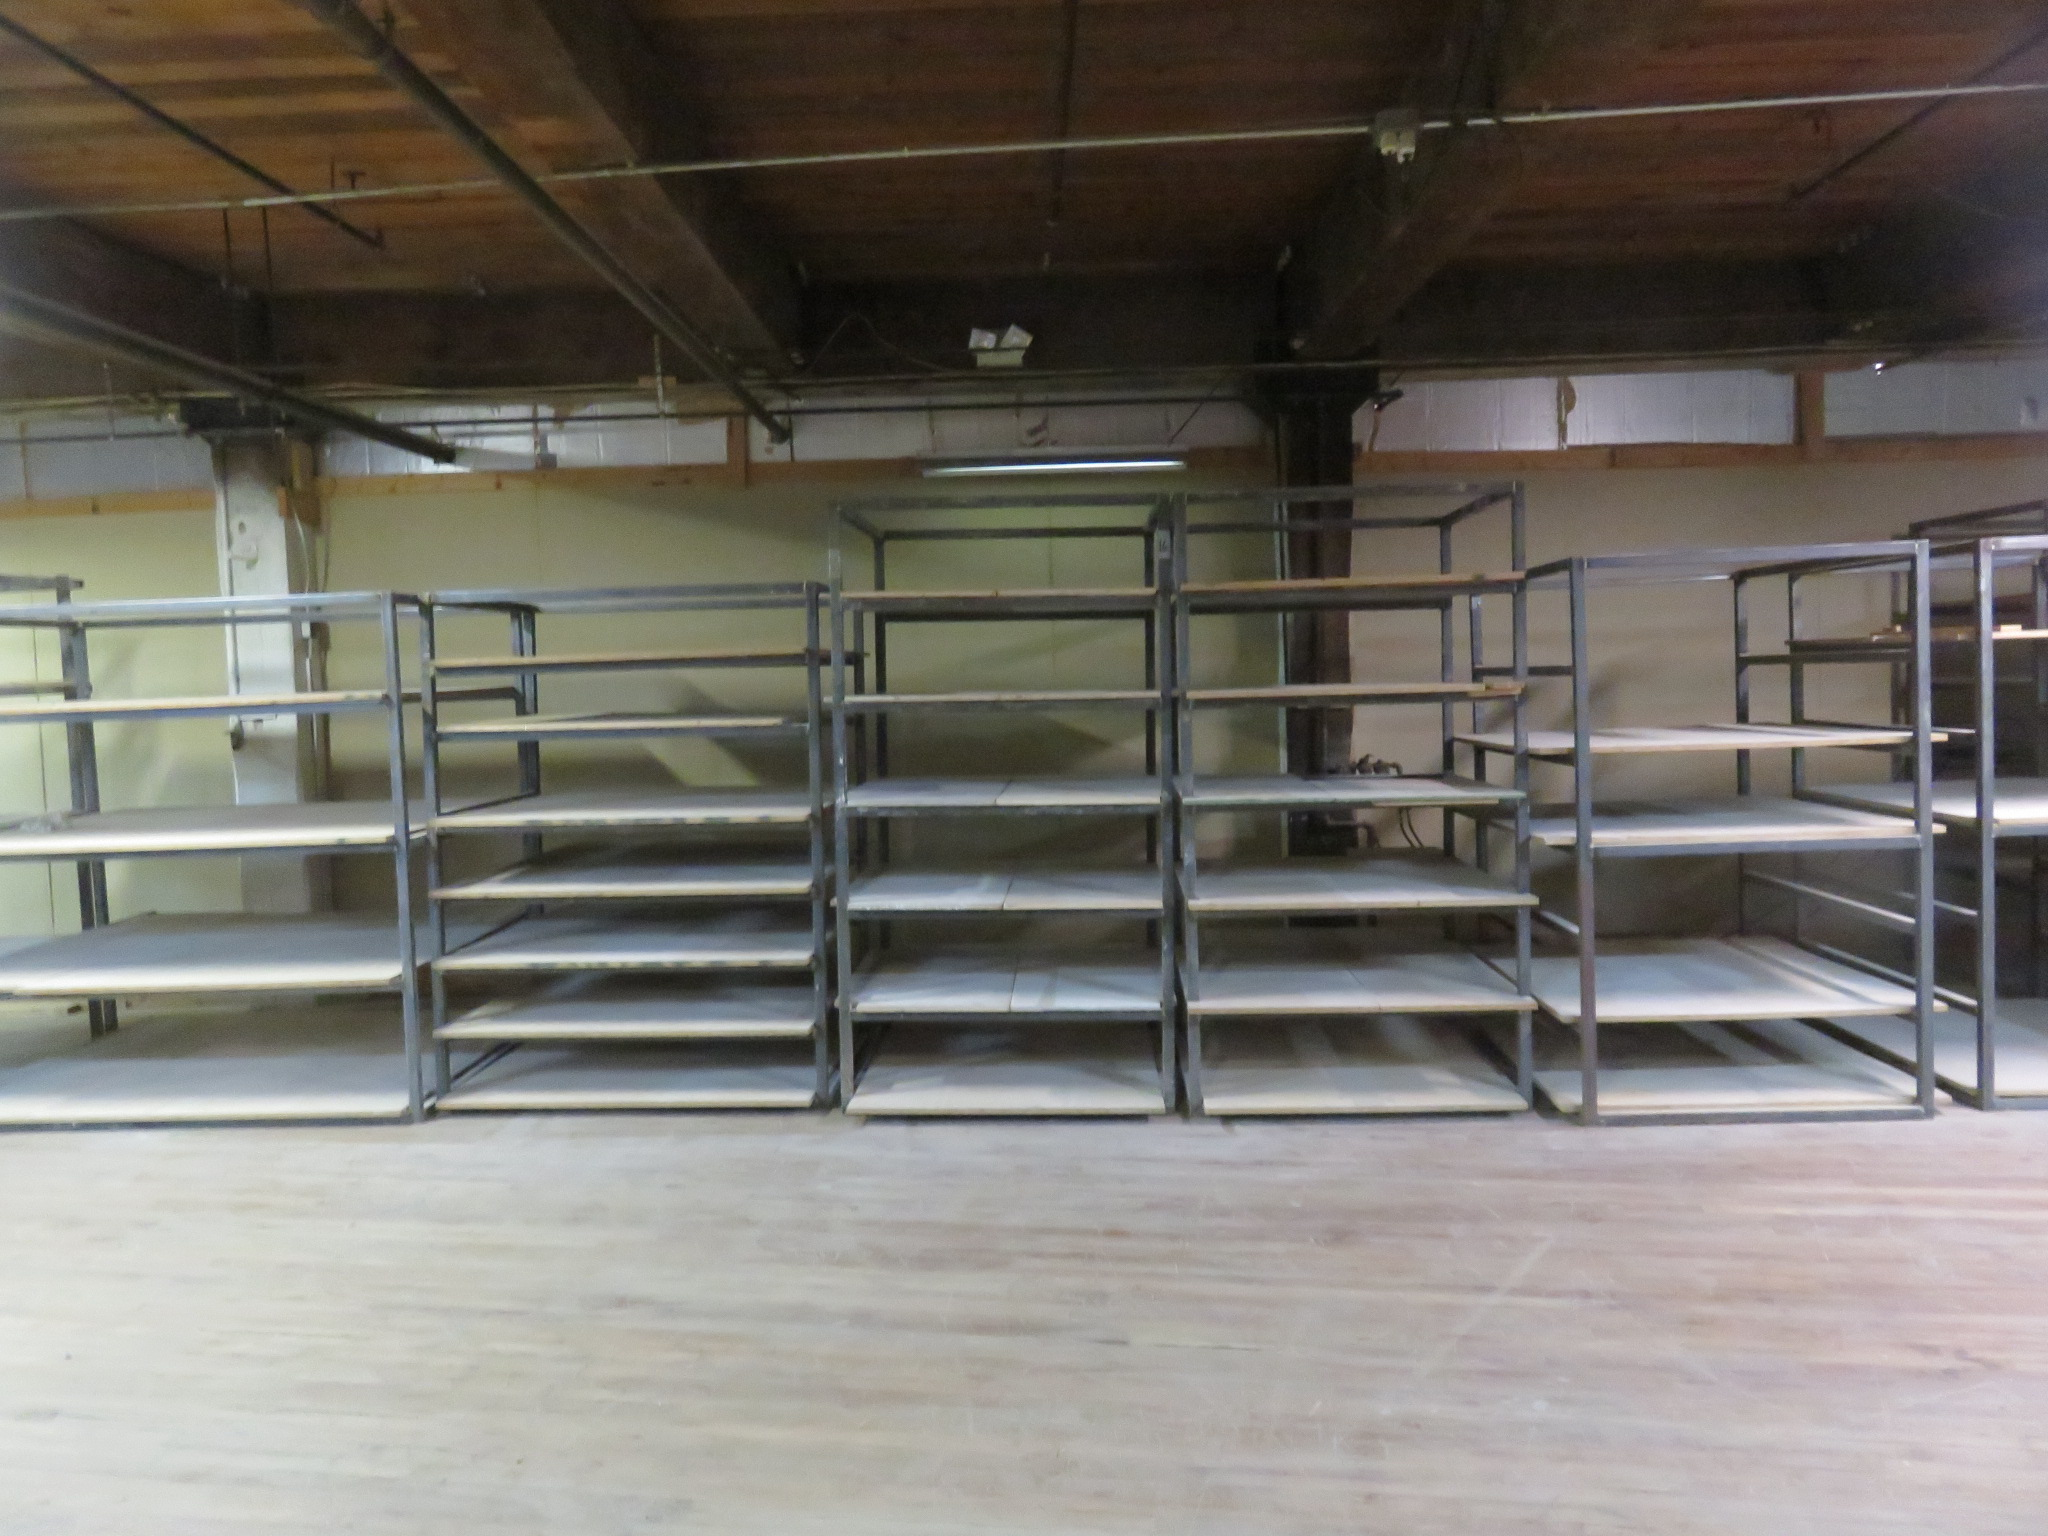 Custom Shelving/ Racks Lot of 9 Sizes Vary - Image 2 of 3